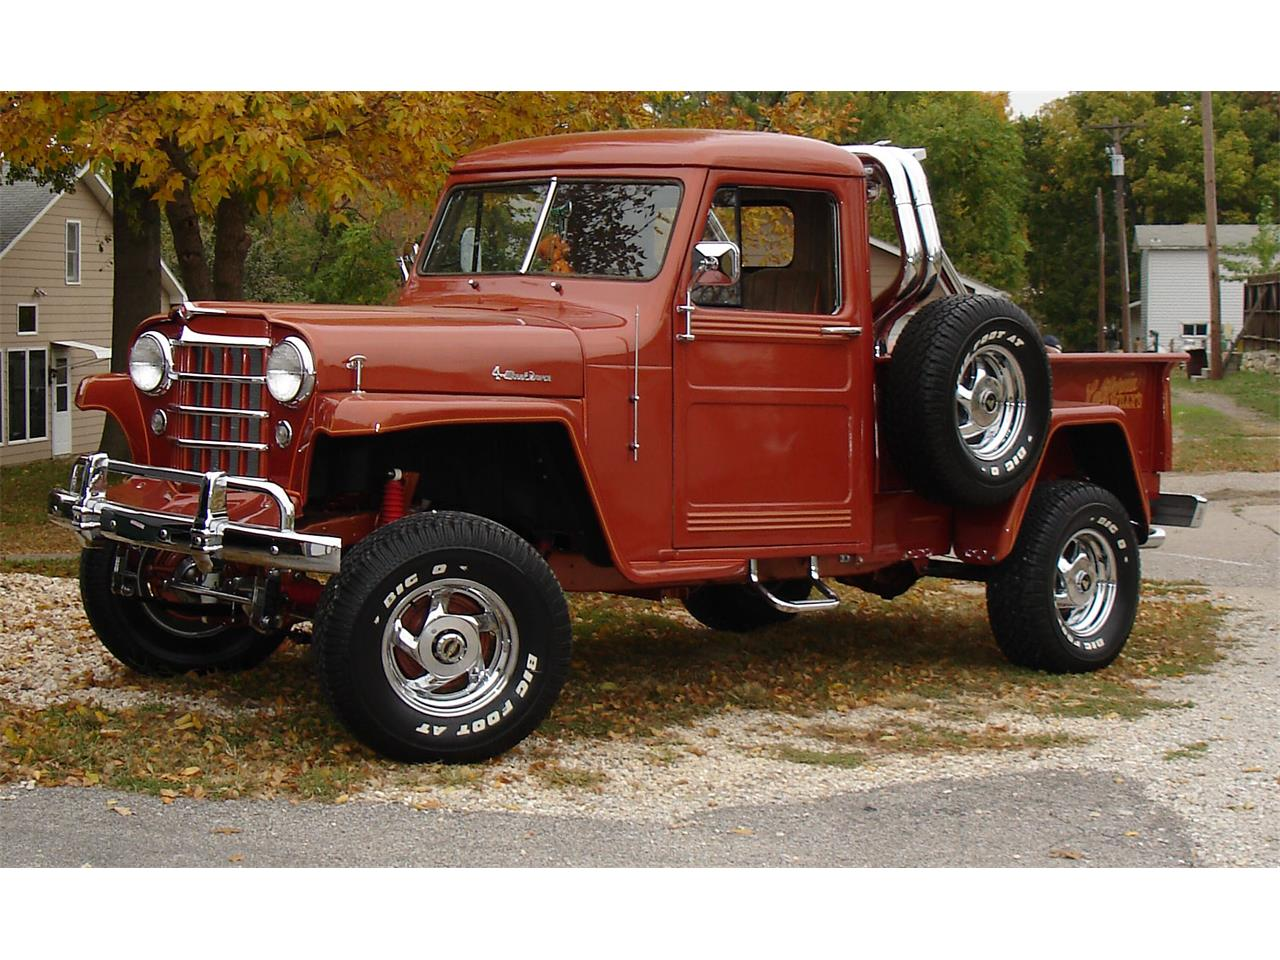 For Sale: 1952 Willys-Overland Pickup in Pleasant Hill, California